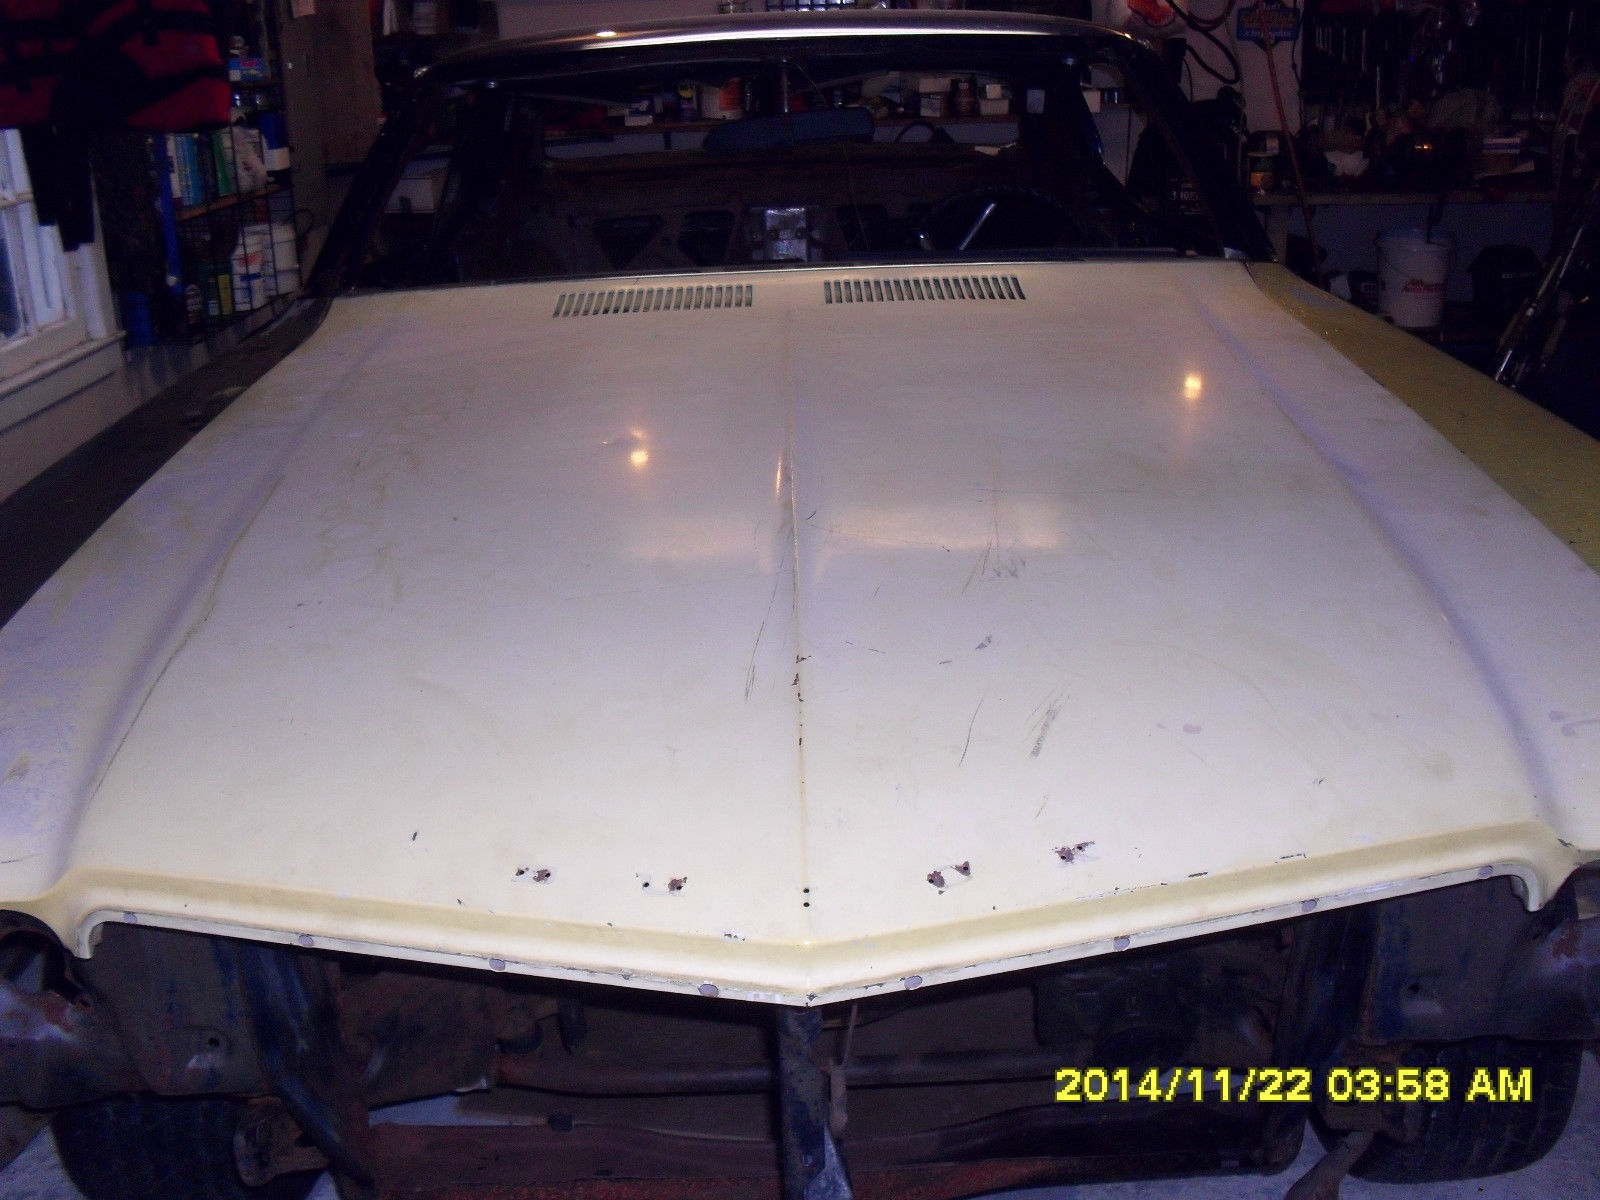 1972 Buick Skylark 1970 1971 Body Style Project Car Or Clone Gs Gsx 1951 Convertible For Sale